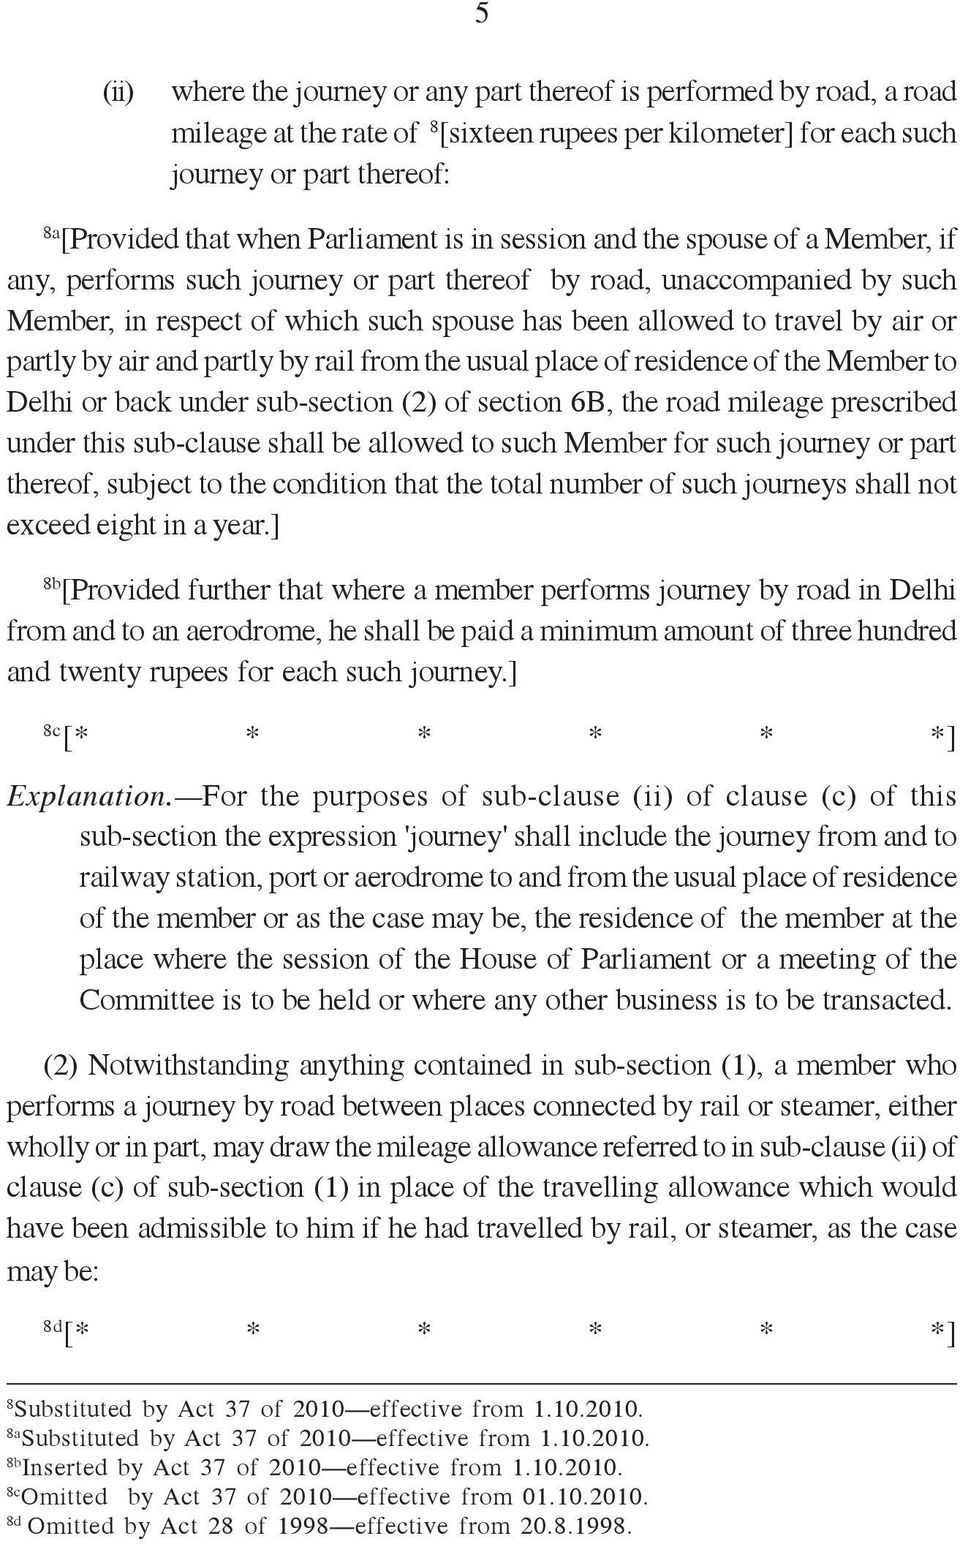 air or partly by air and partly by rail from the usual place of residence of the Member to Delhi or back under sub-section (2) of section 6B, the road mileage prescribed under this sub-clause shall